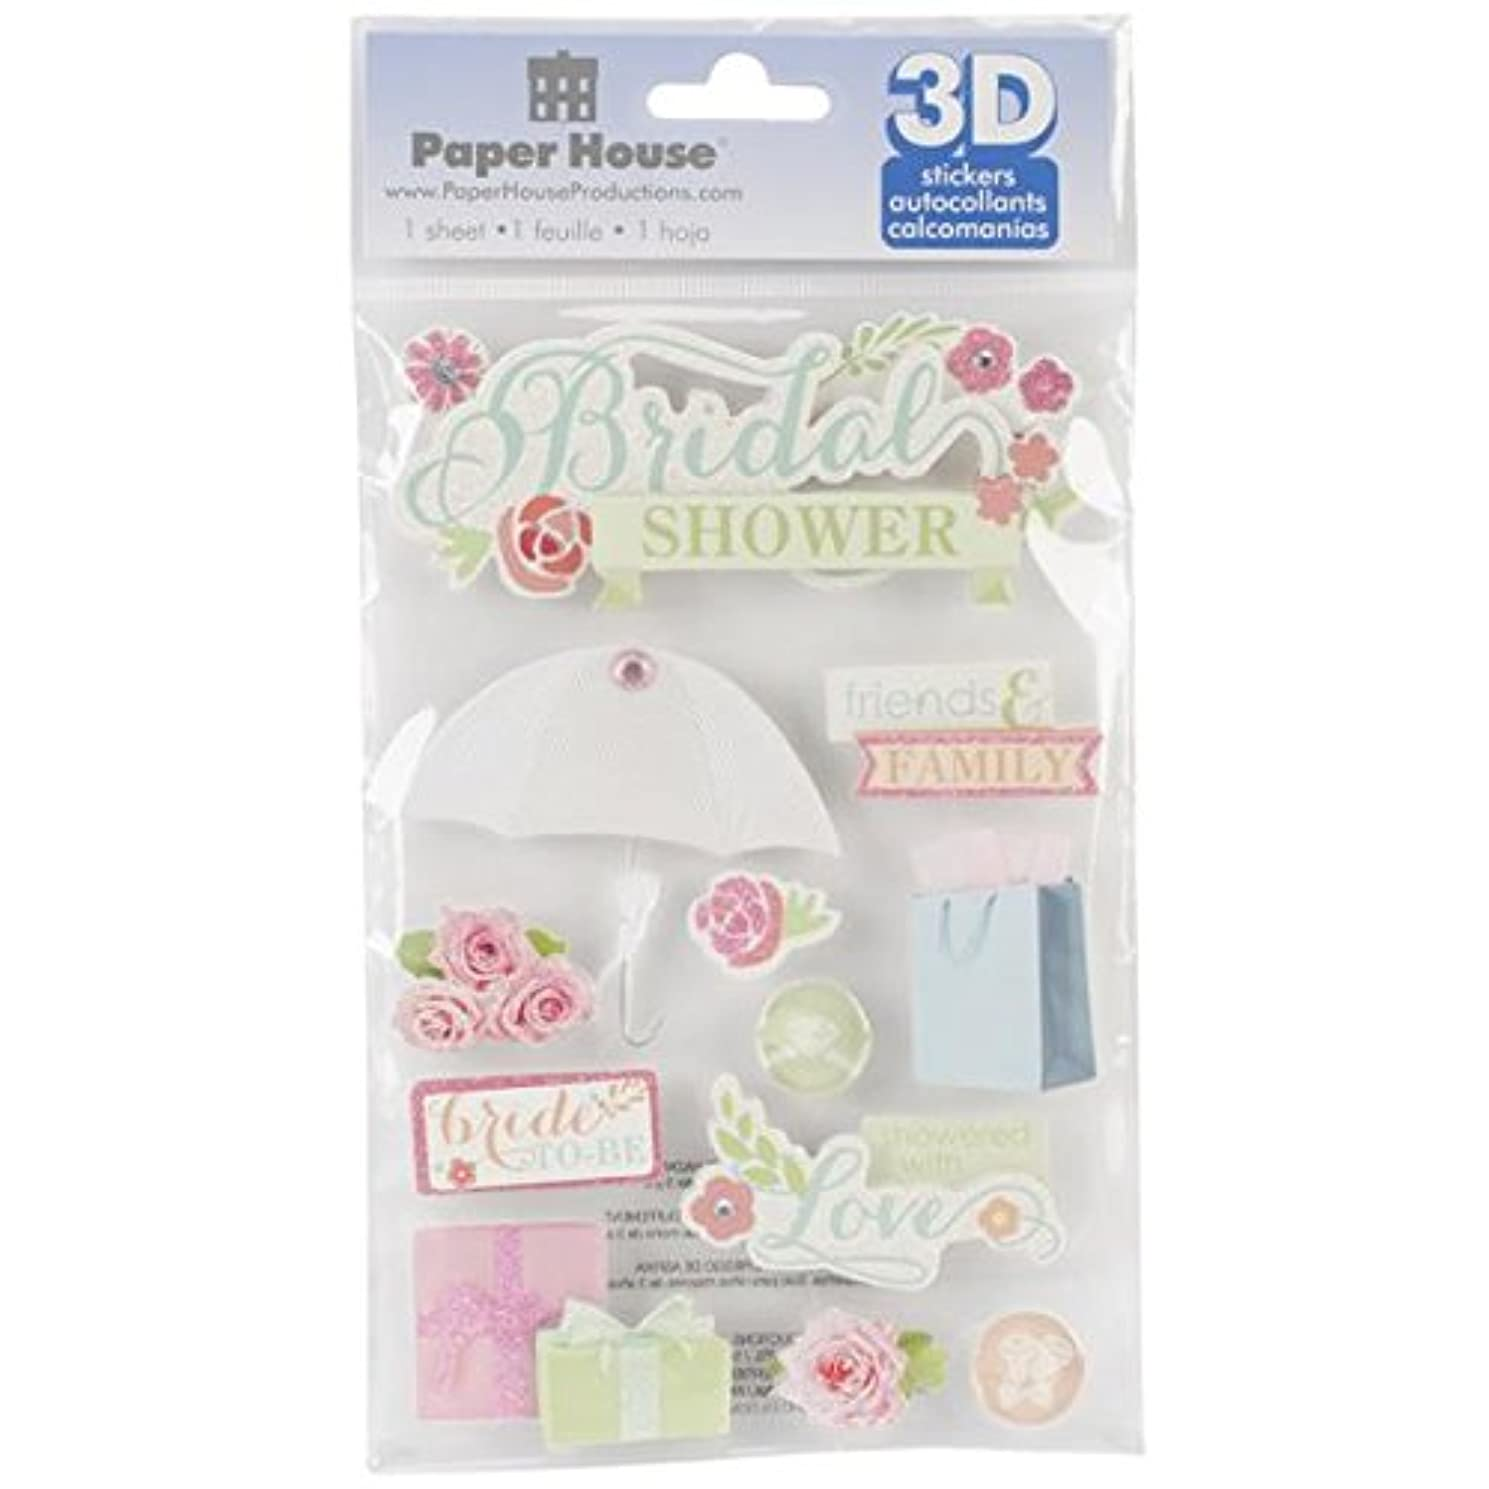 Paper House Productions STDM-0198E 3D Cardstock Stickers, Bridal Shower (3-Pack)